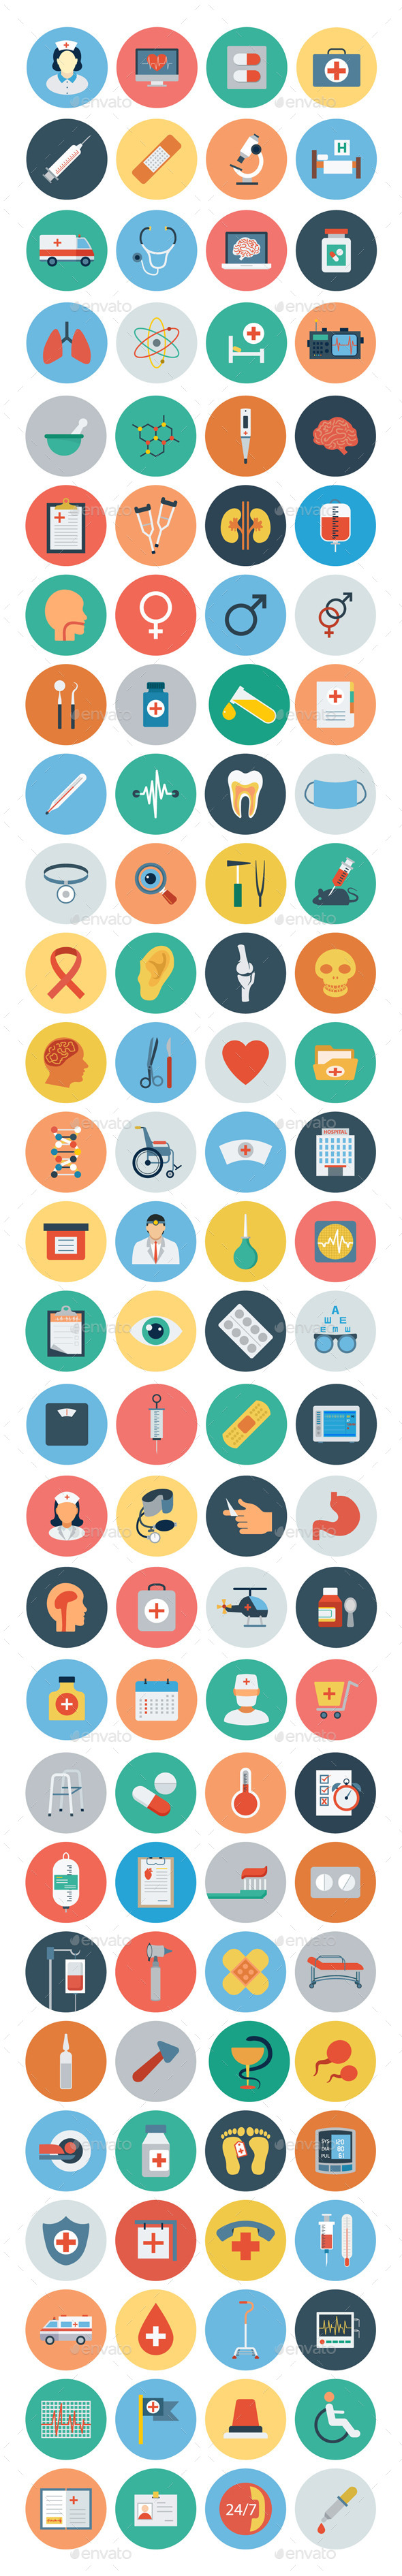 100+ Medical Flat Icons - Icons